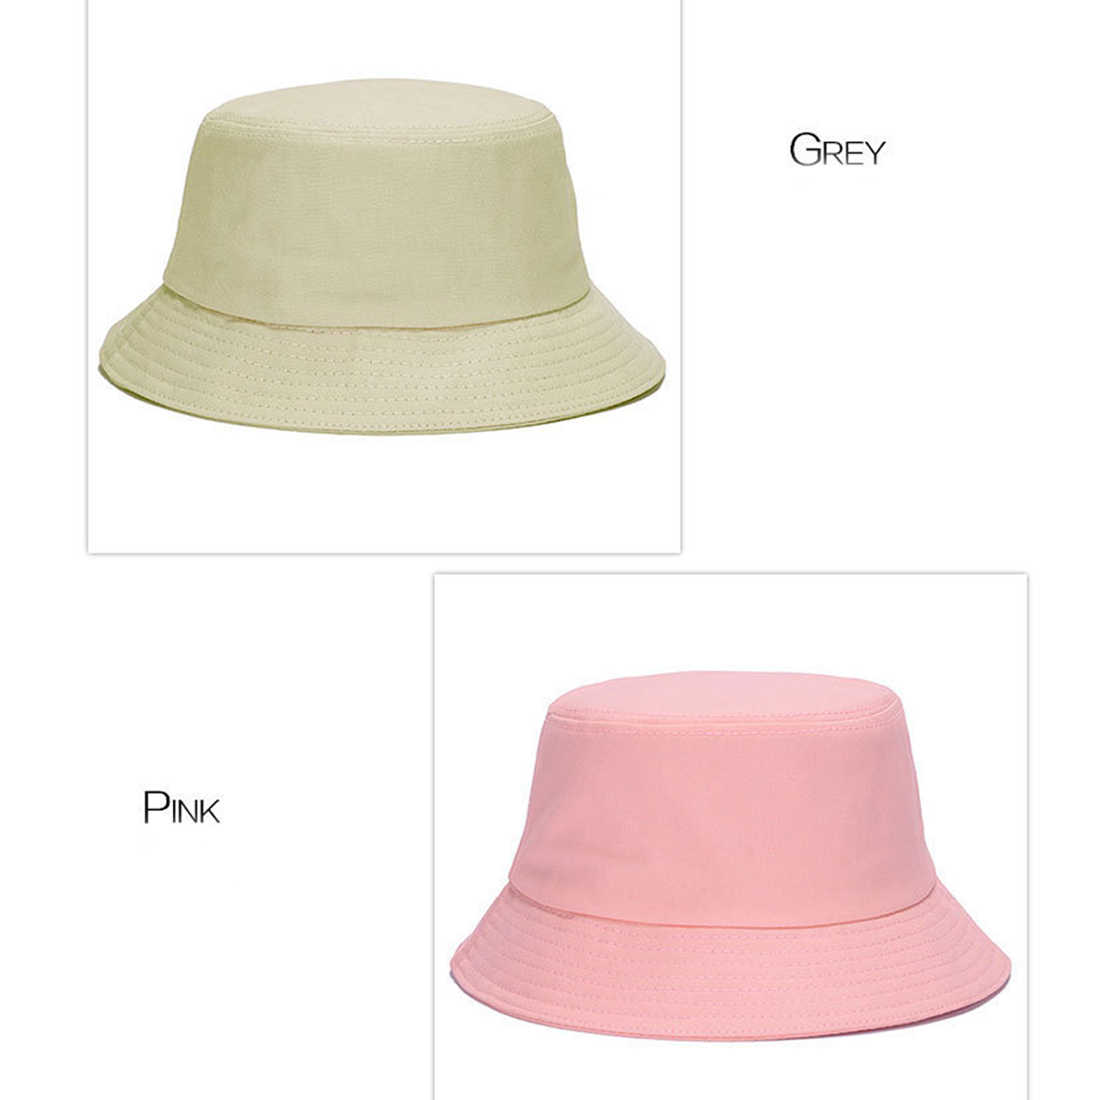 ... Korean jelly-colored Color Bucket Hats for Men Panama Women Hat  fisherman hat Street DIY ... 2f8f2f2025a8